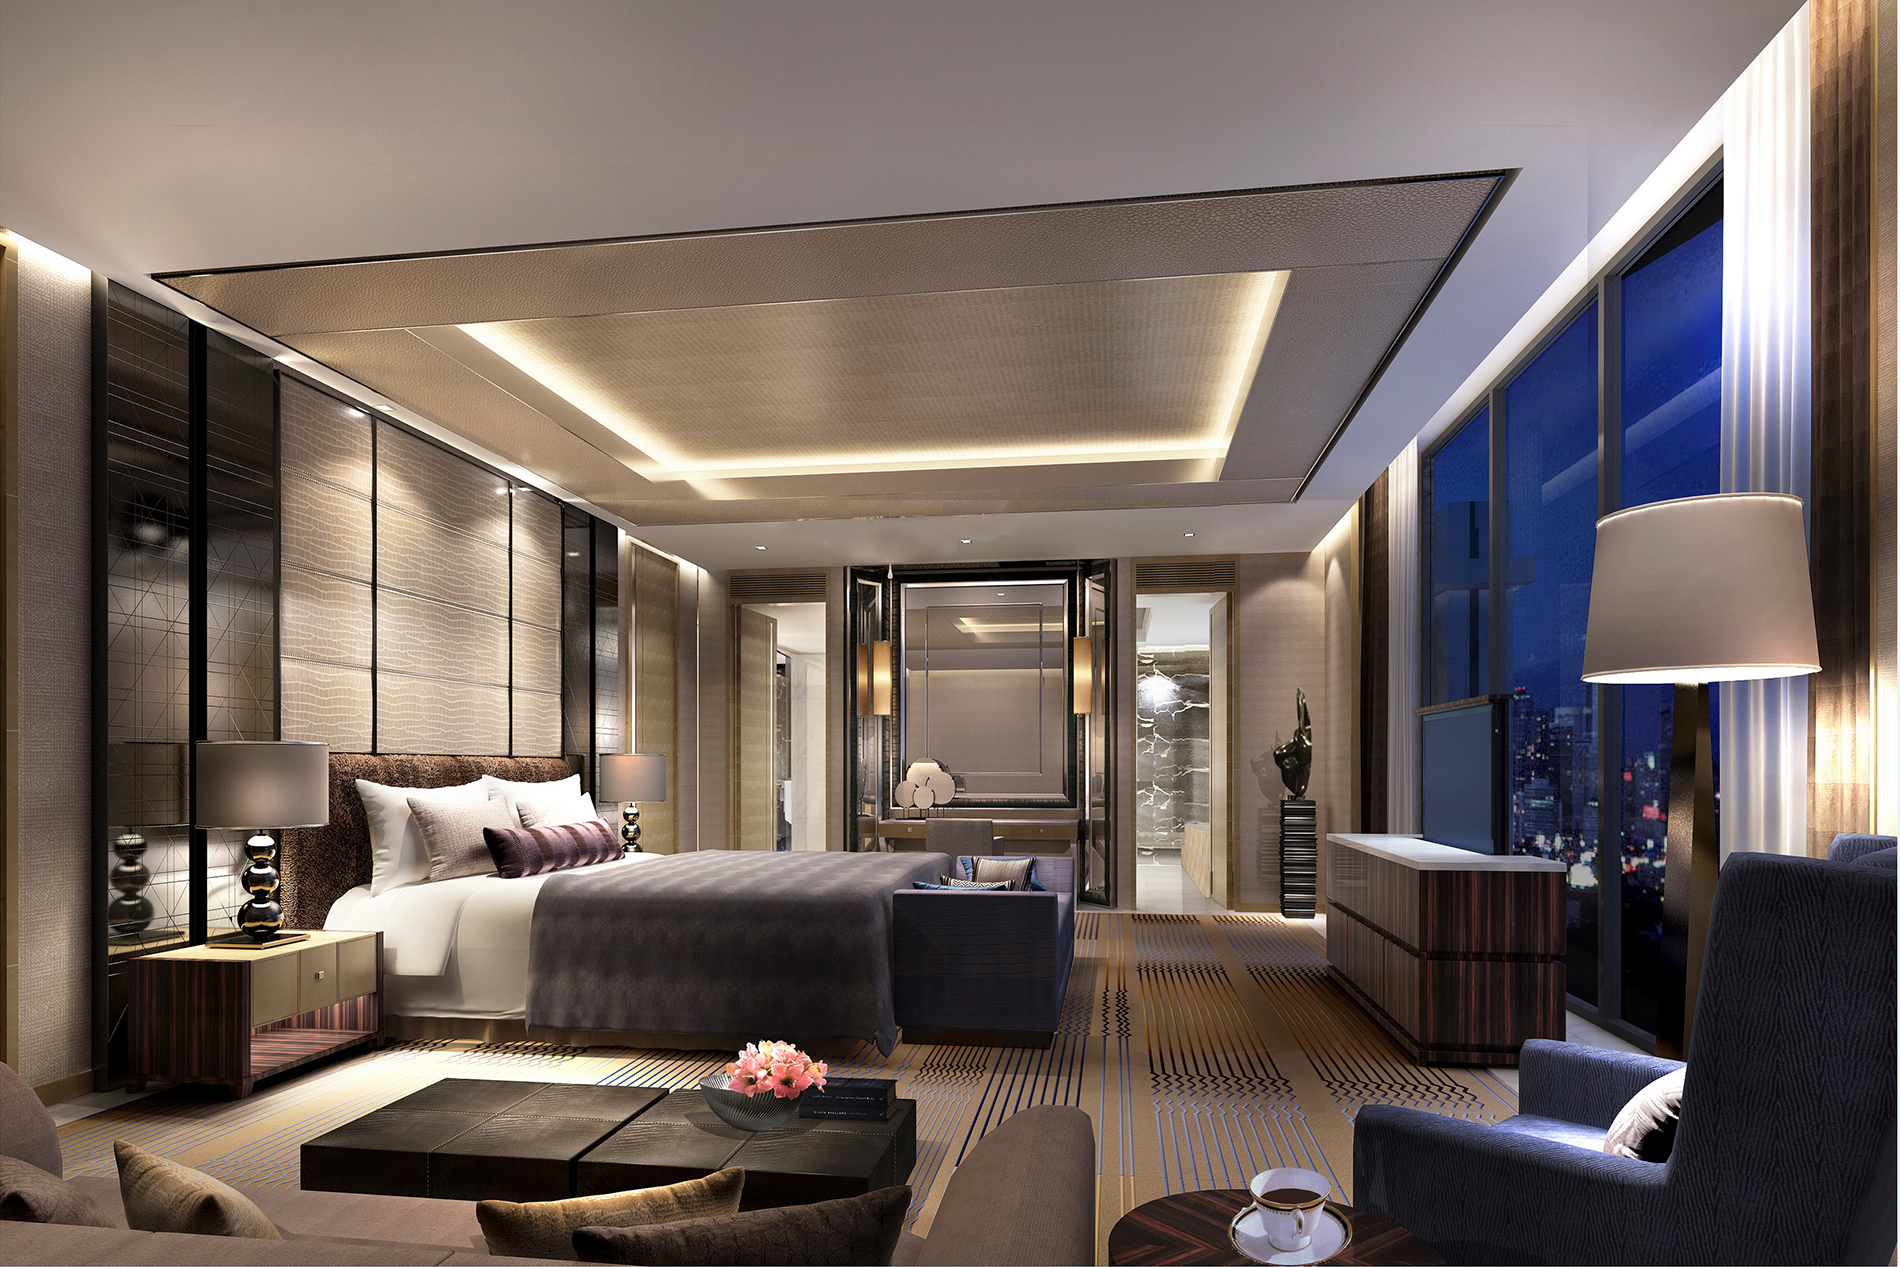 New langham place hotel opens in xiamen china for Modern luxury hotels uk